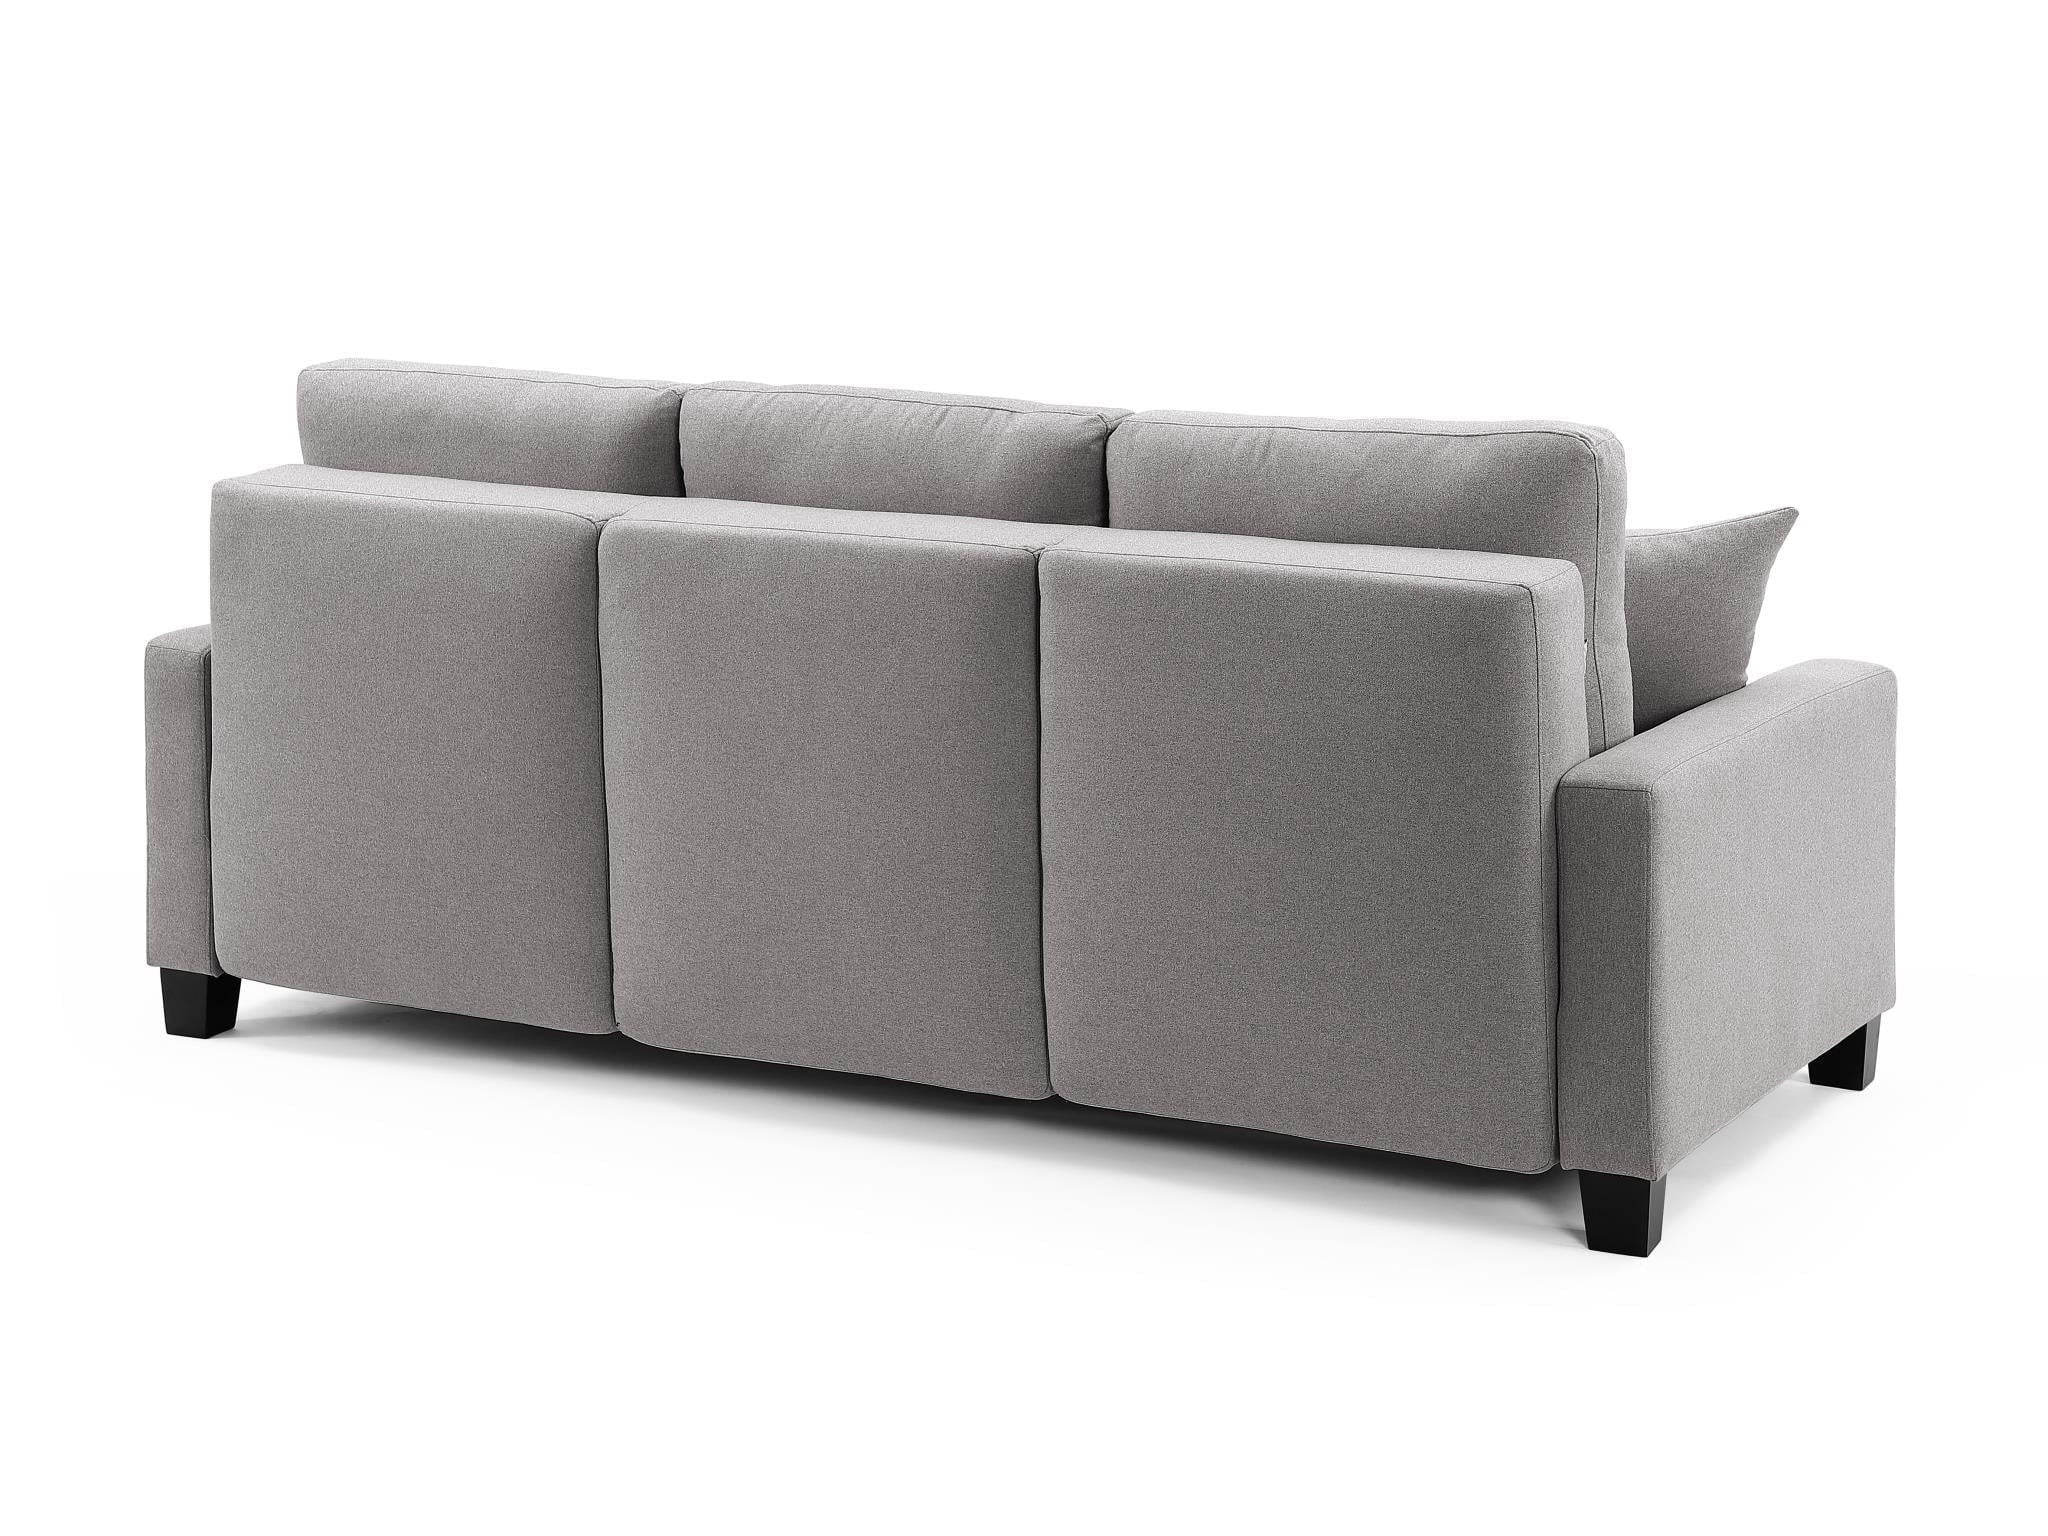 Prime Barletta Full Size Sealy Sofa Sleeper Convertible Sofa Gmtry Best Dining Table And Chair Ideas Images Gmtryco